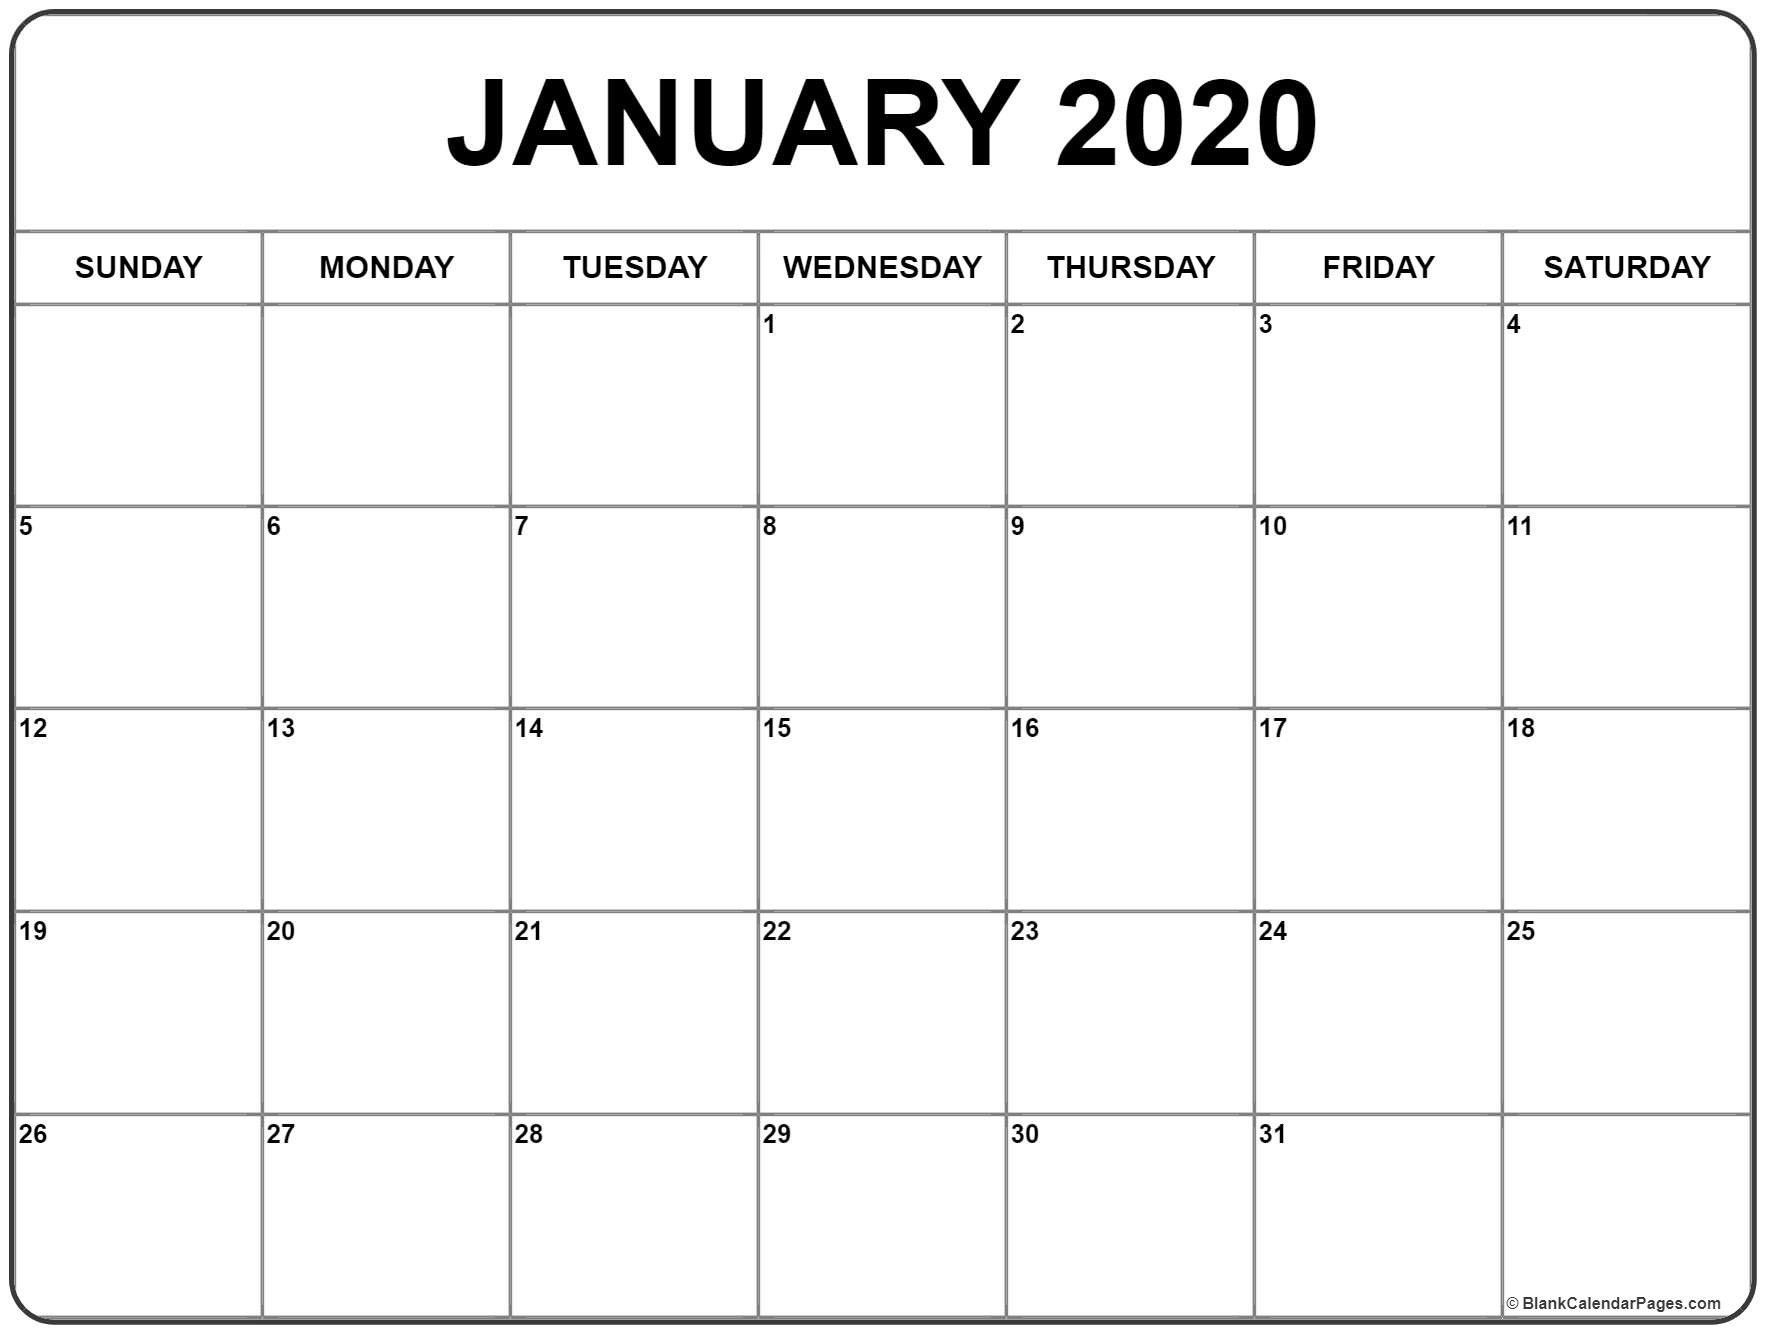 January 2020 Calendar Printable Pdf | Example Calendar Printable intended for Depo Provera Calendar Printable Pdf